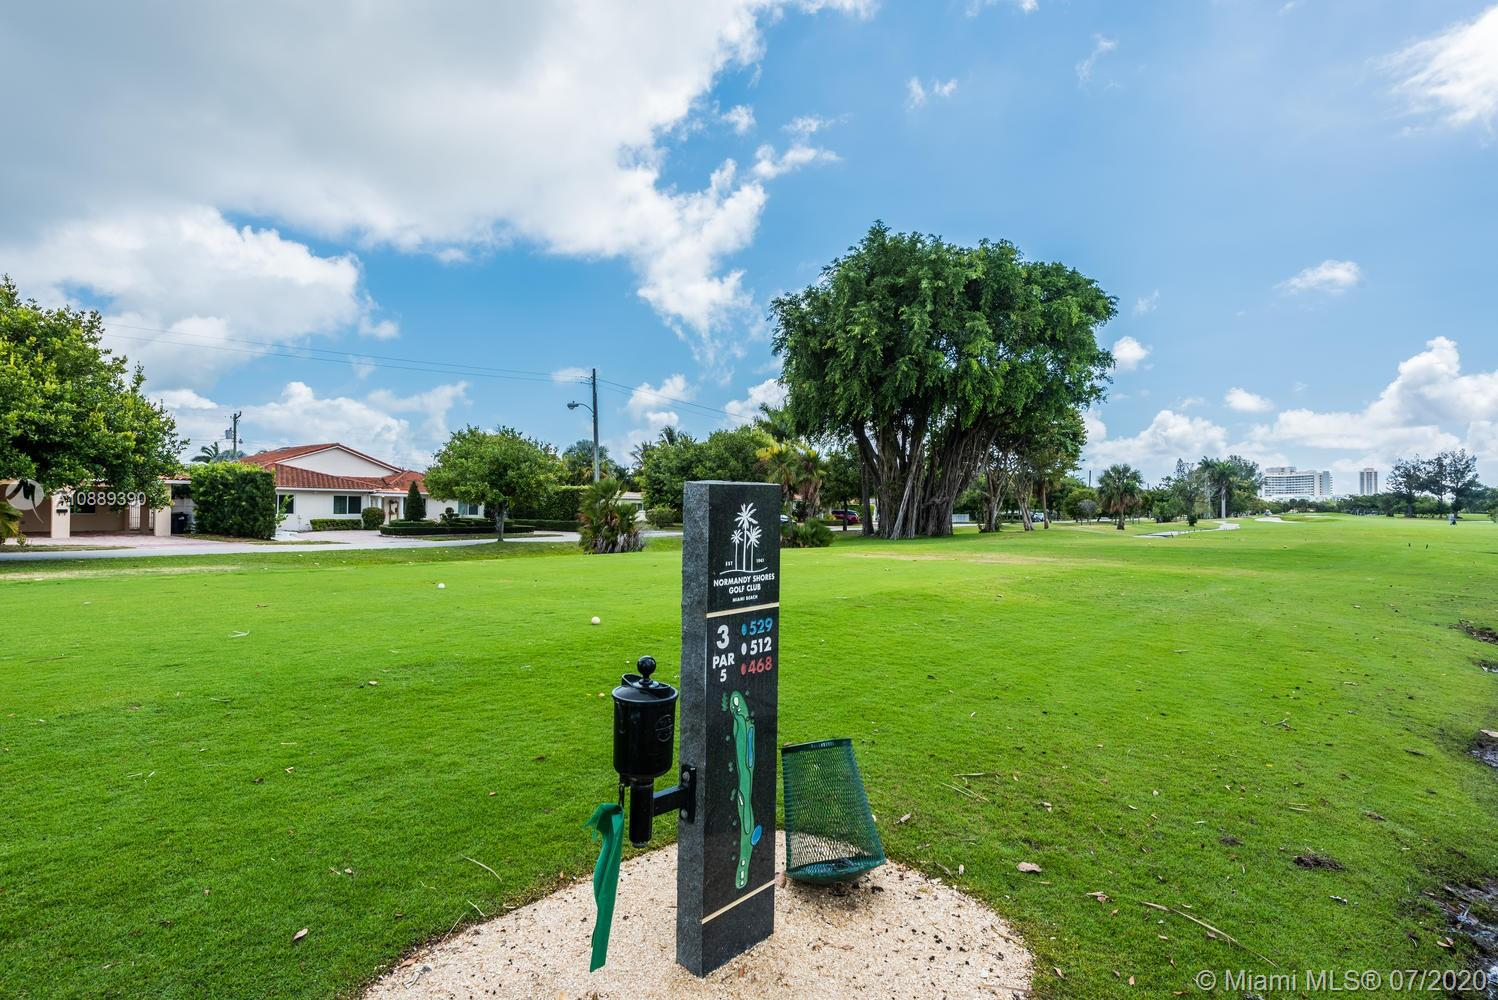 image #1 of property, Normandy Golf Course